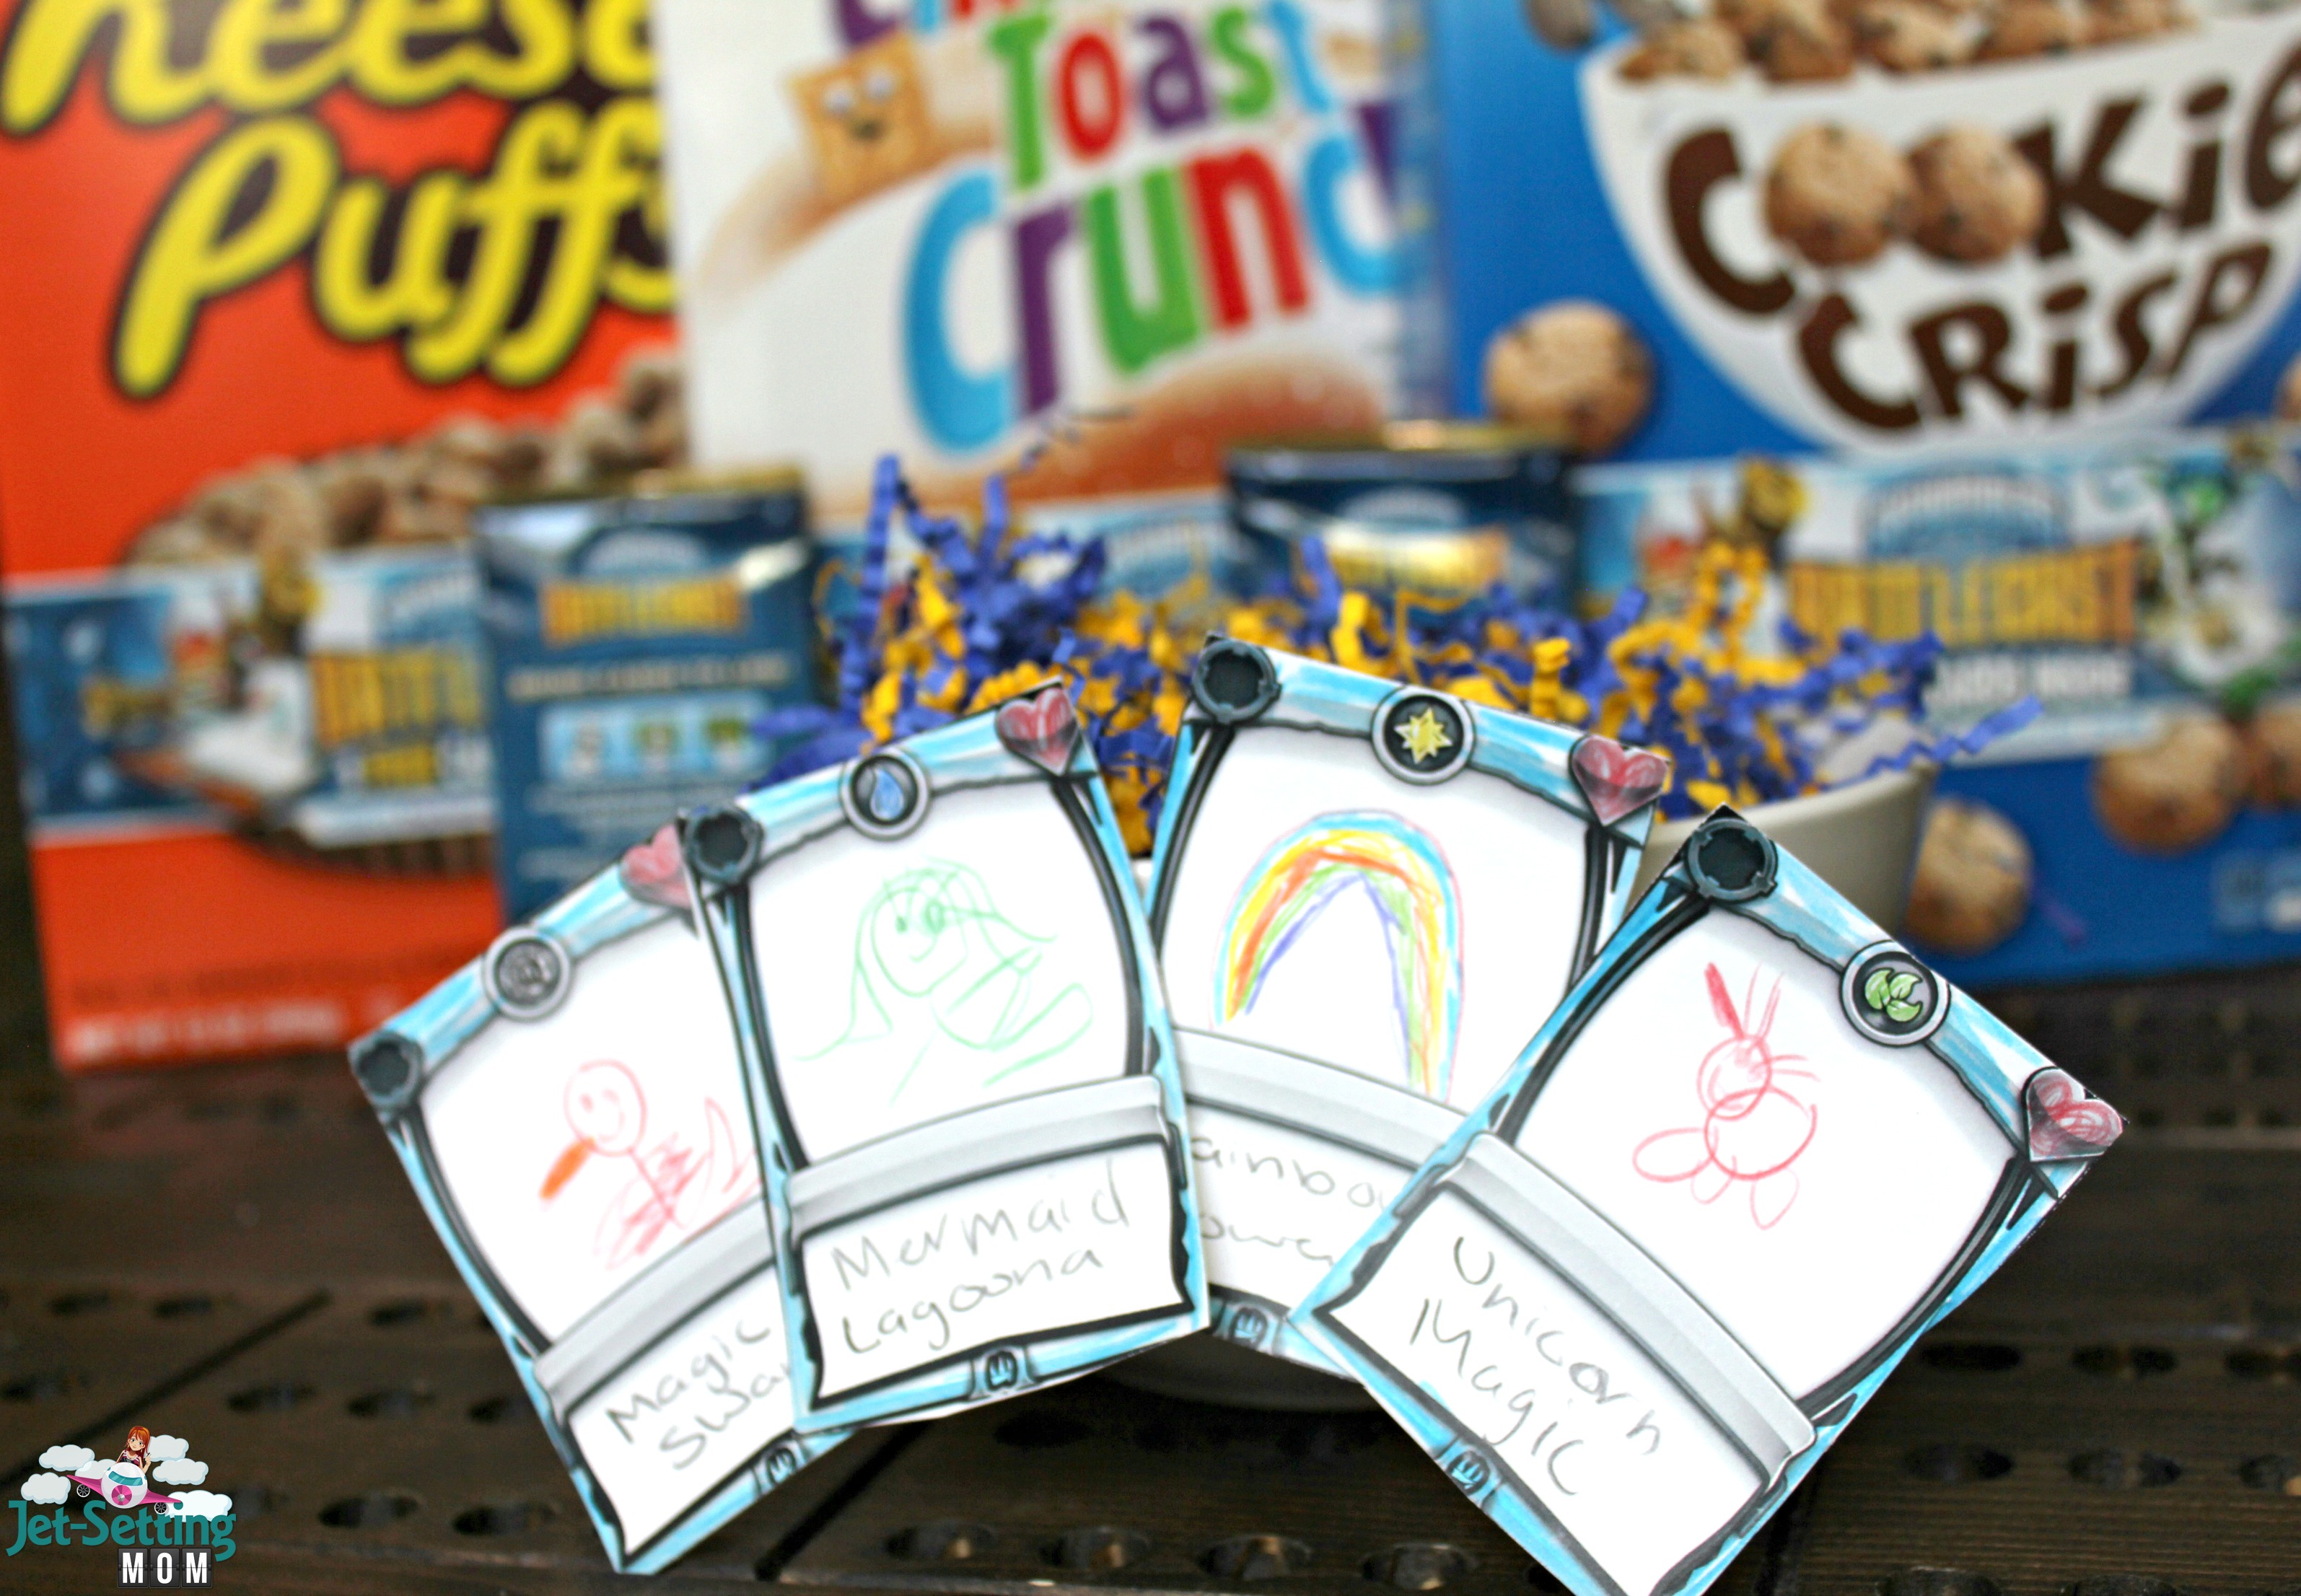 Grab new Skylanders #Battlecast cards in specially marked boxes of General Mills Cereals! #BigGBattlecast #ad